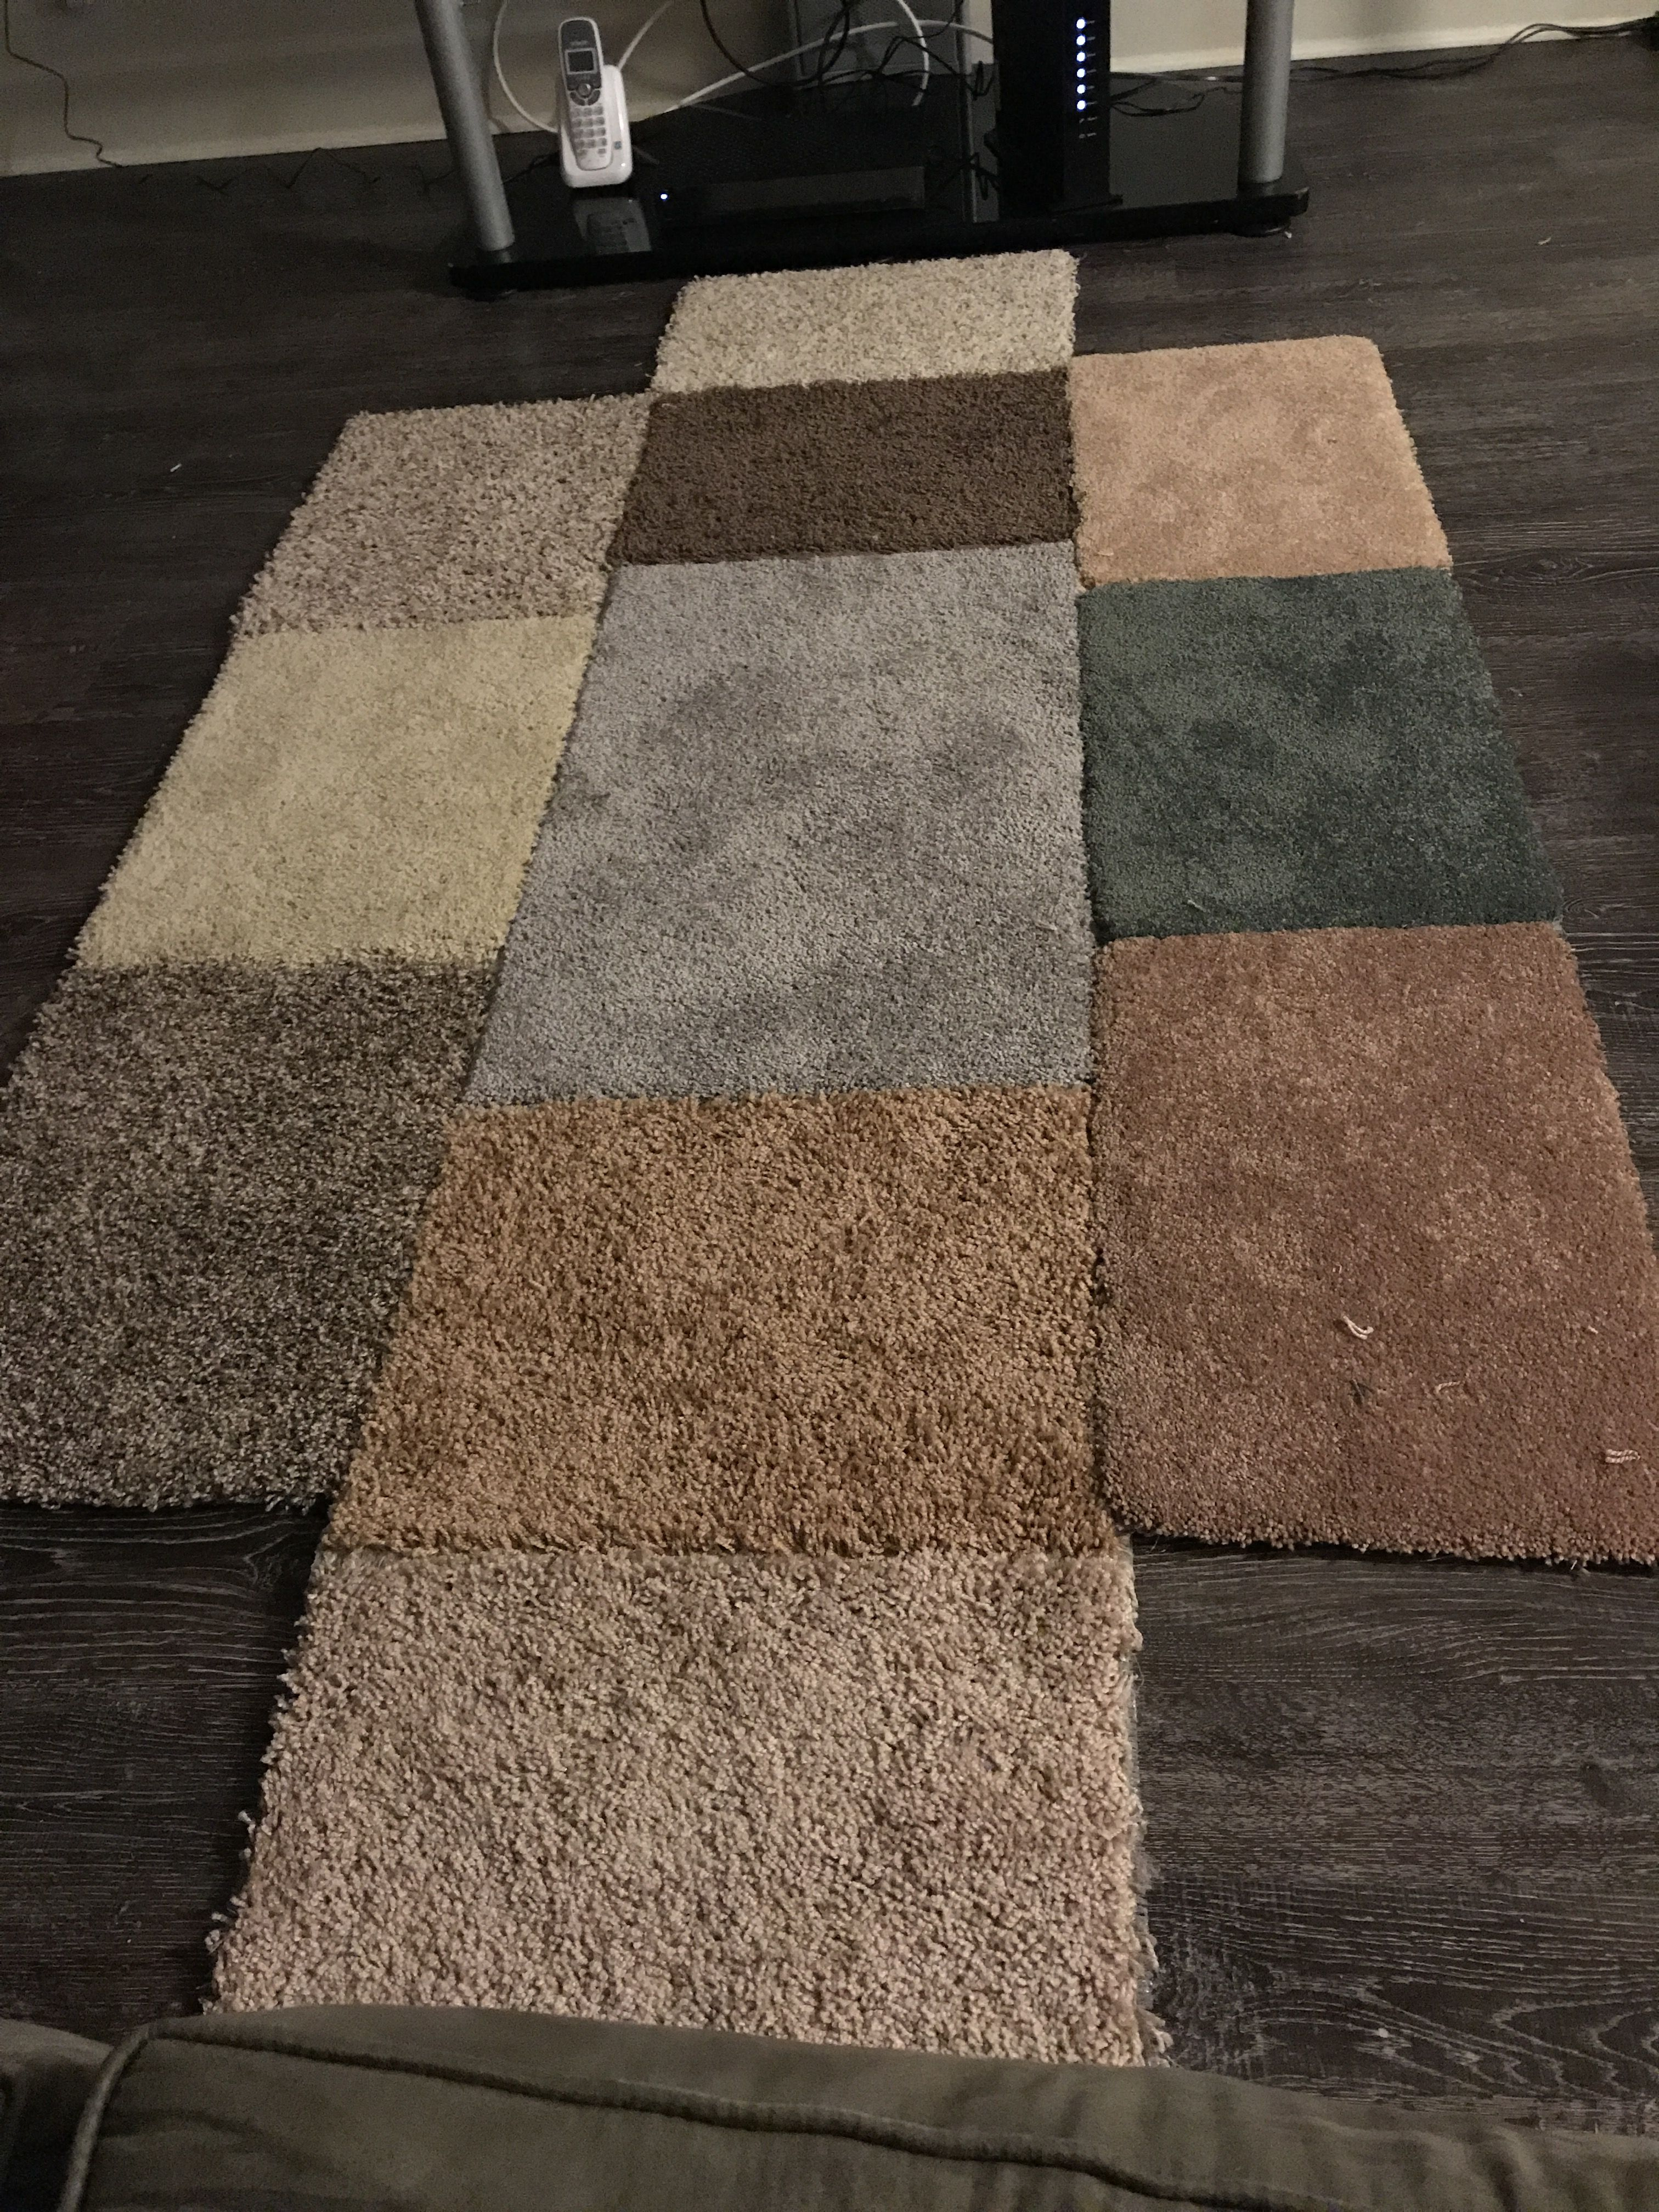 My D I Y Area Rug Using Gorilla Tape And Carpet Samples